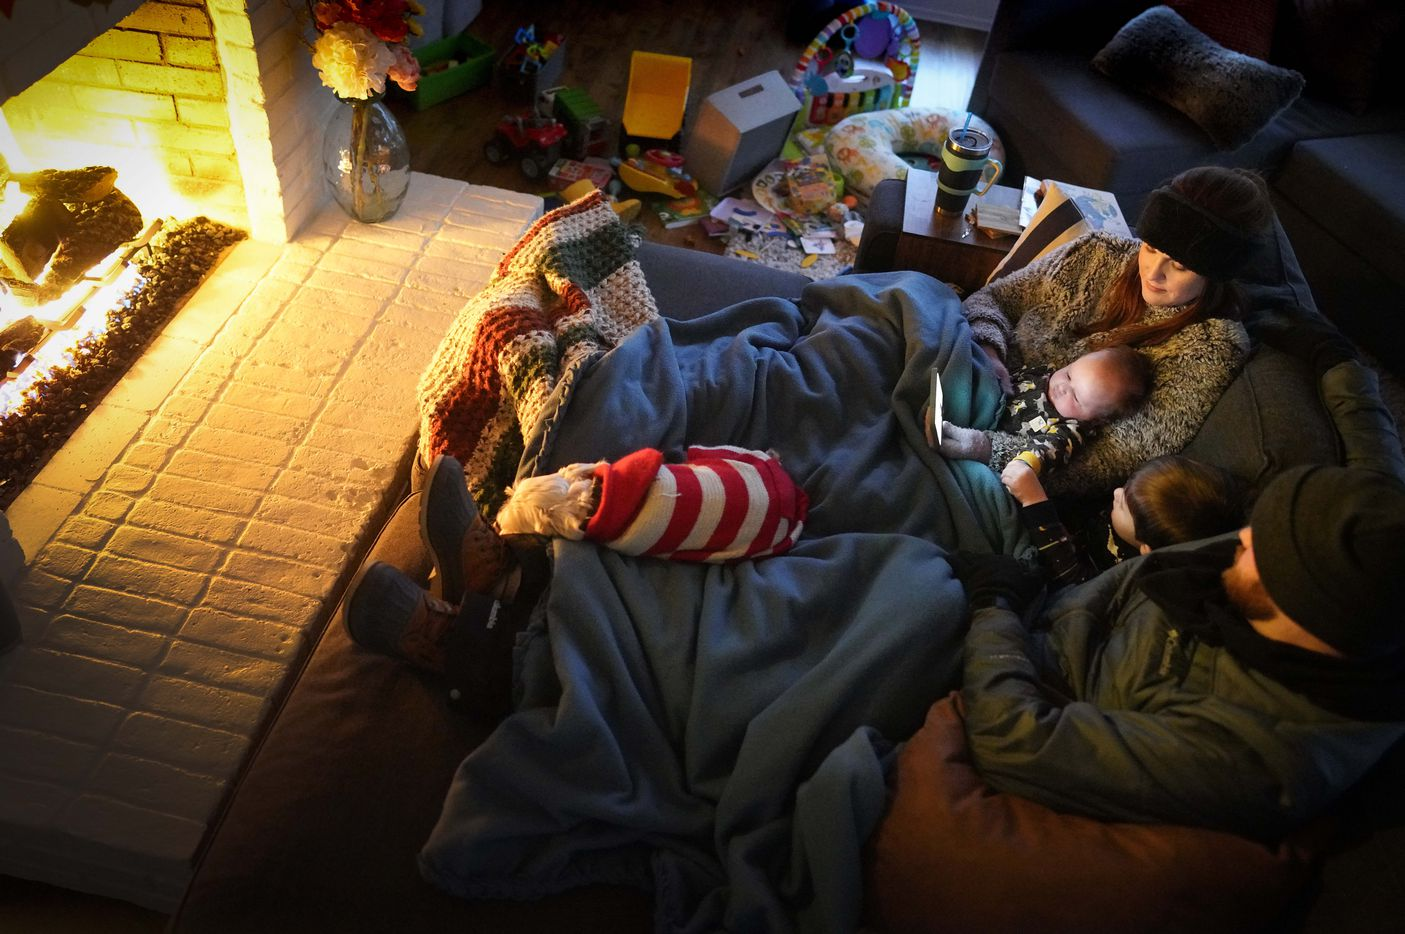 Dan Bryant and his wife Anna huddle by the fire with sons Benny, 3, and Sam, 12 weeks, along with their dog Joey, also wearing two doggie sweaters, with power out and temperatures dropping inside their home after a winter storm brought snow and freezing temperatures to North Texas on Monday, Feb. 15, 2021, in Garland.  The Bryant's, who lost power Monday morning, were wearing outdoor winter clothes, down to snow boots, hat, and ski pants, and even their dog Joey had two doggie sweaters.  More than 2 million Texans were without power after the winter storm prompted outages. (Smiley N. Pool/The Dallas Morning News)